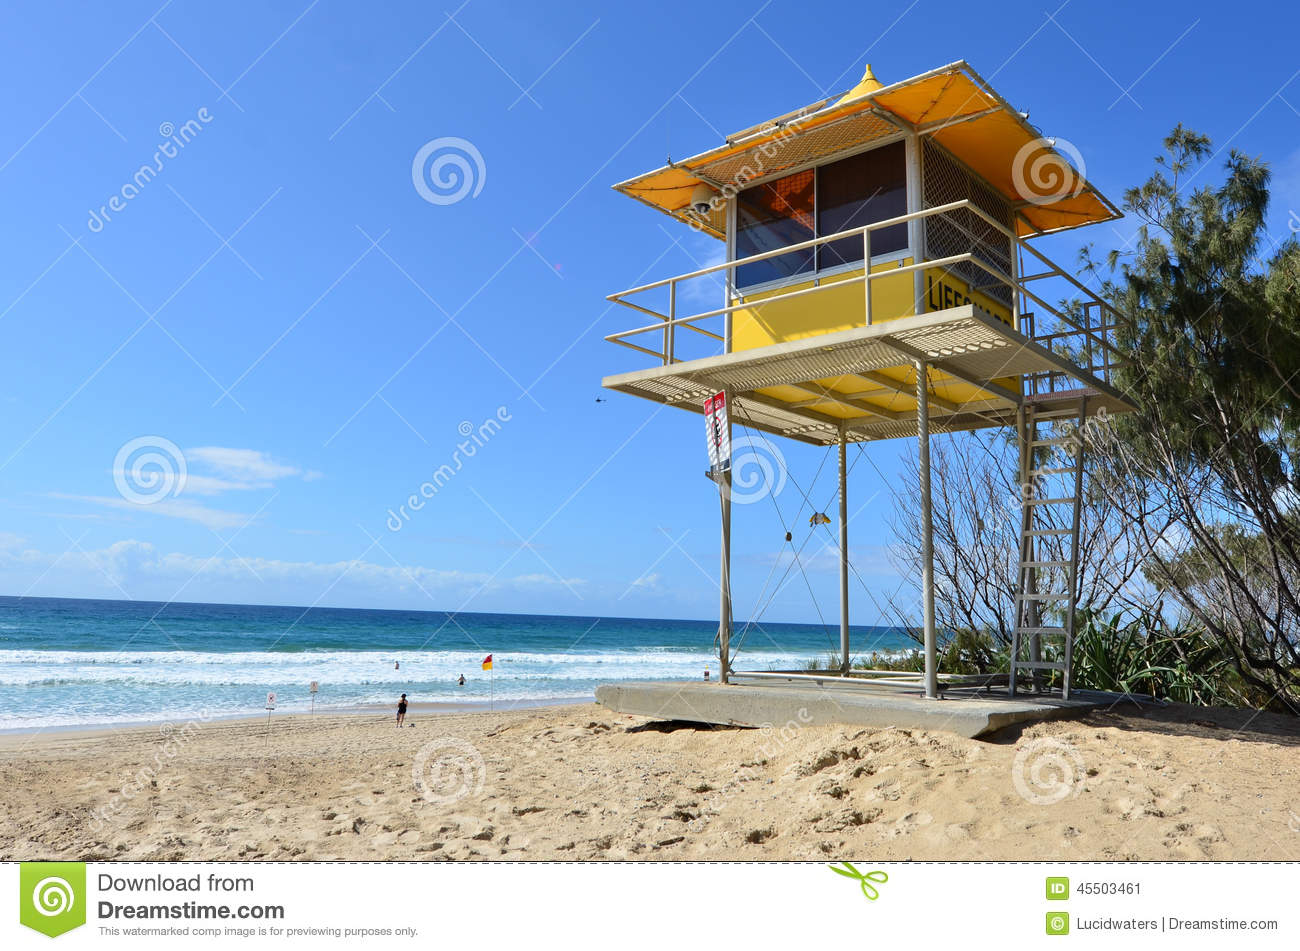 a6ba99175b5 GOLD COAST - SEP 28 2014  Australian Lifeguards tower in Gold Coast  Australia.Australian Lifeguards are world-renown for their high levels of  skill and ...